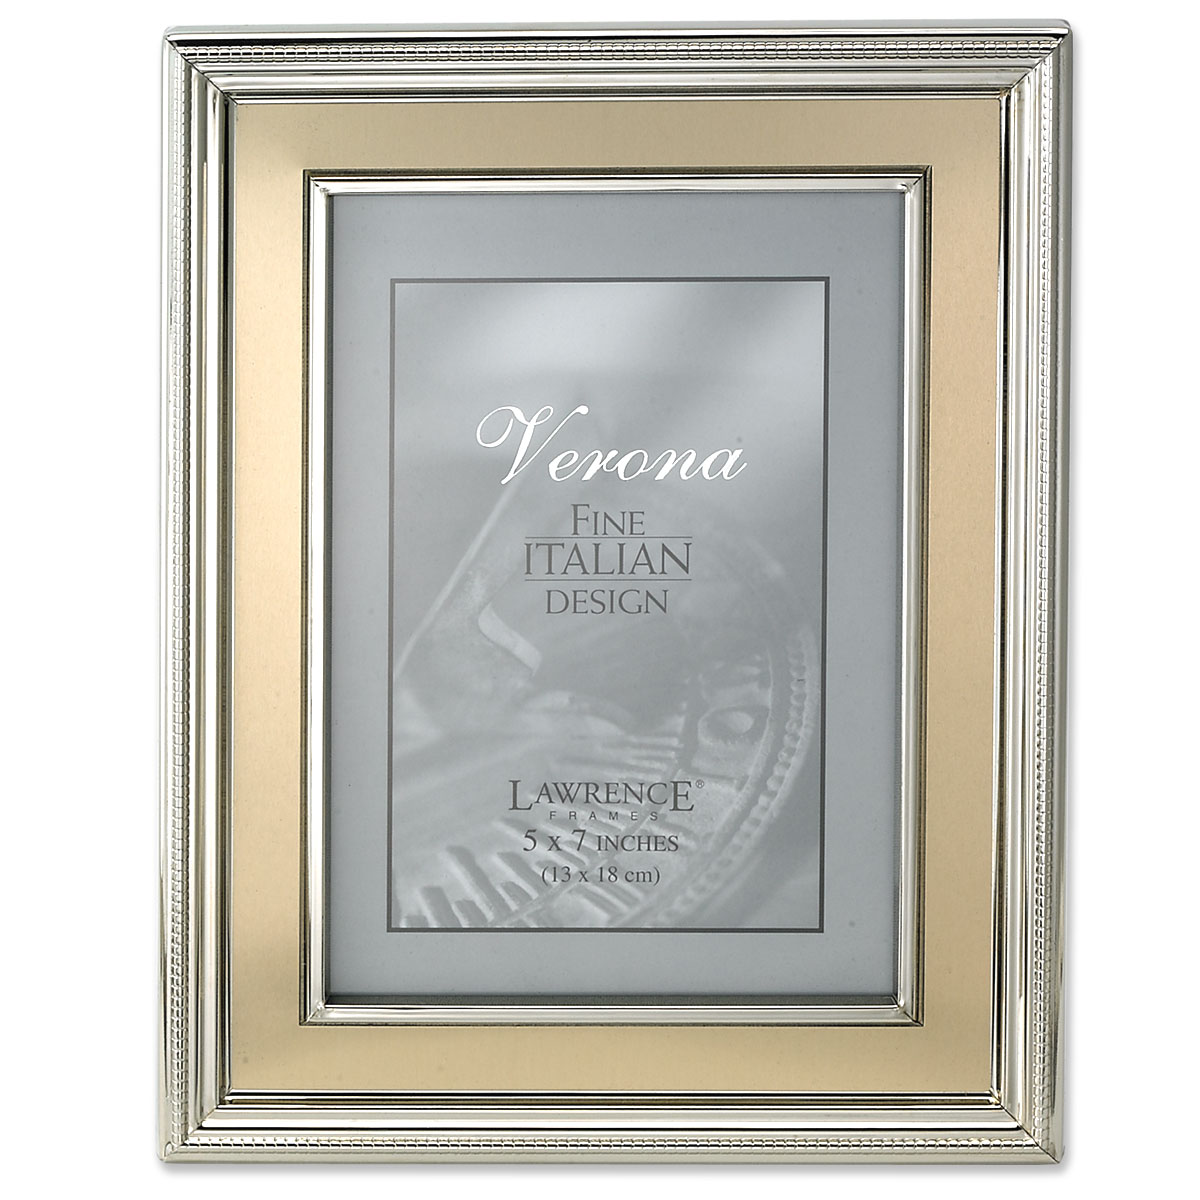 5x7 Silver Plated Metal Picture Frame - Brushed Gold Inner Panel